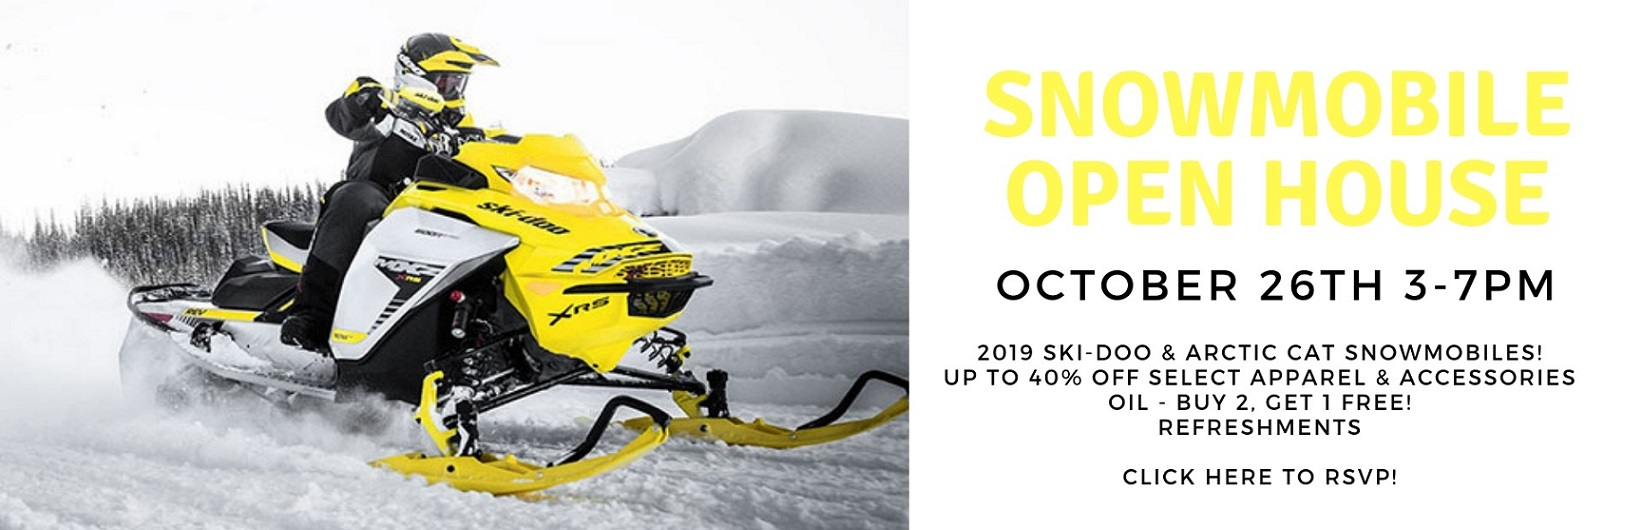 Snowmobile Open House